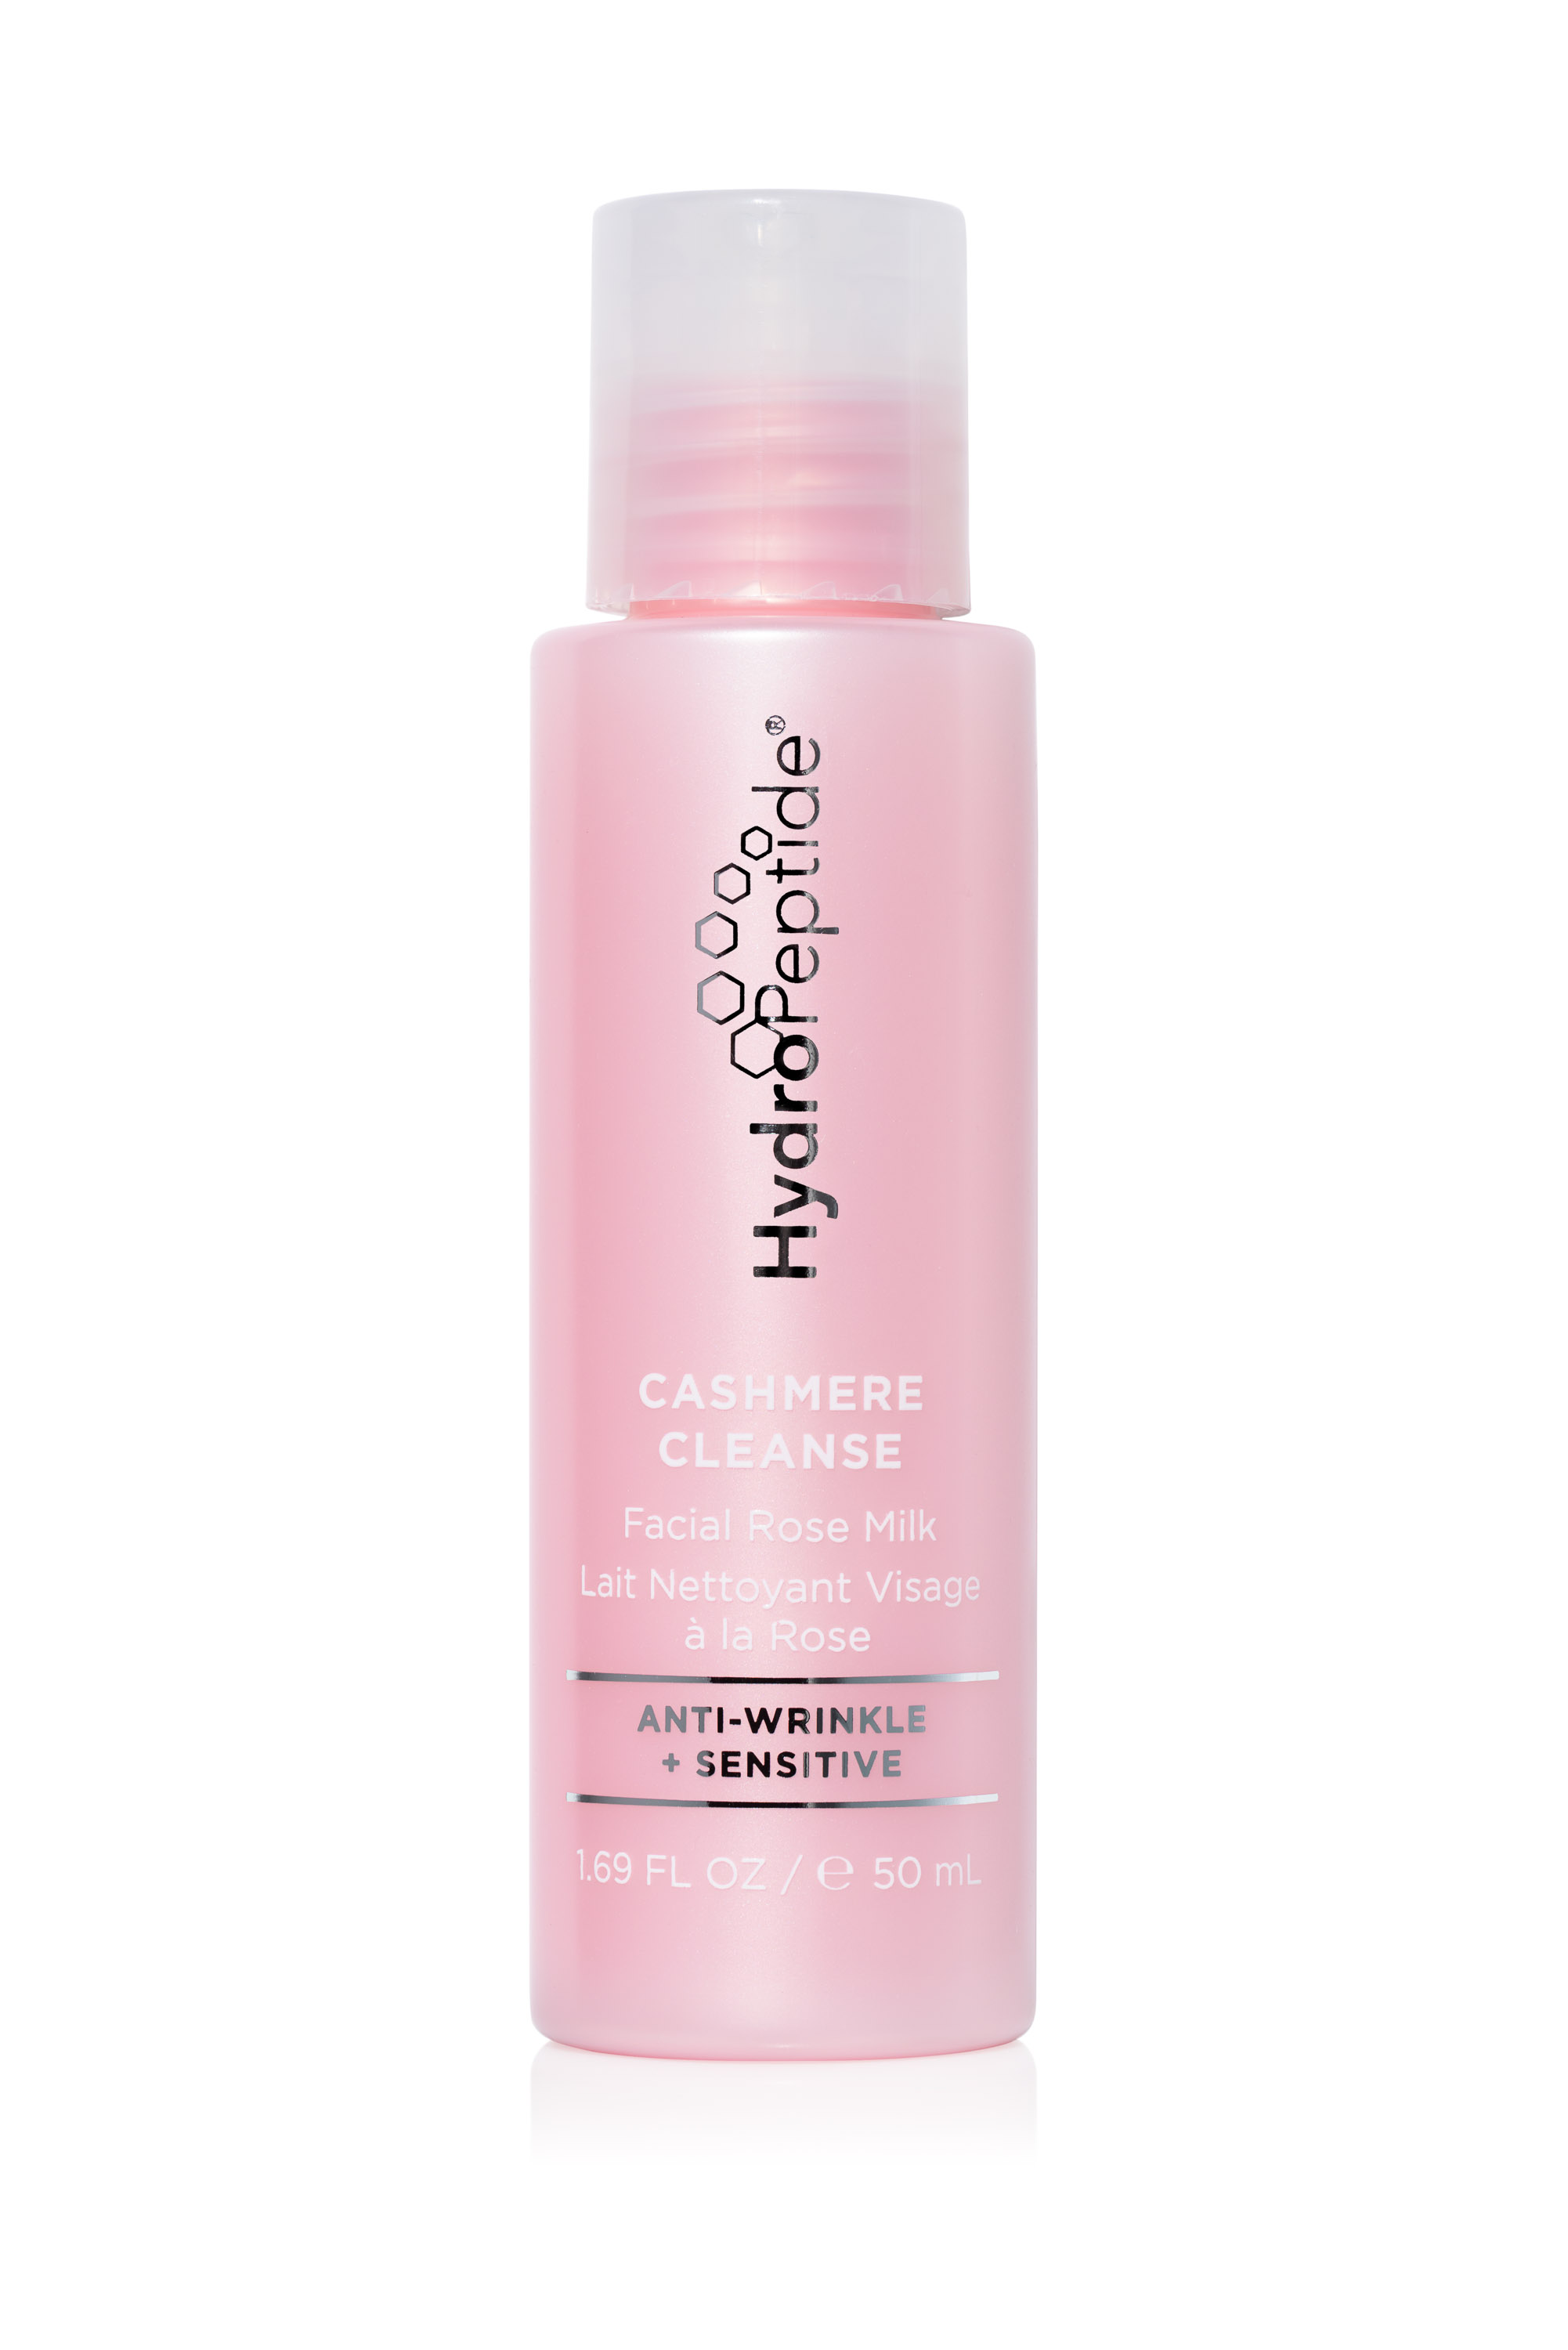 HYDROPEPTIDE TRAVEL CASHMERE CLEANSE